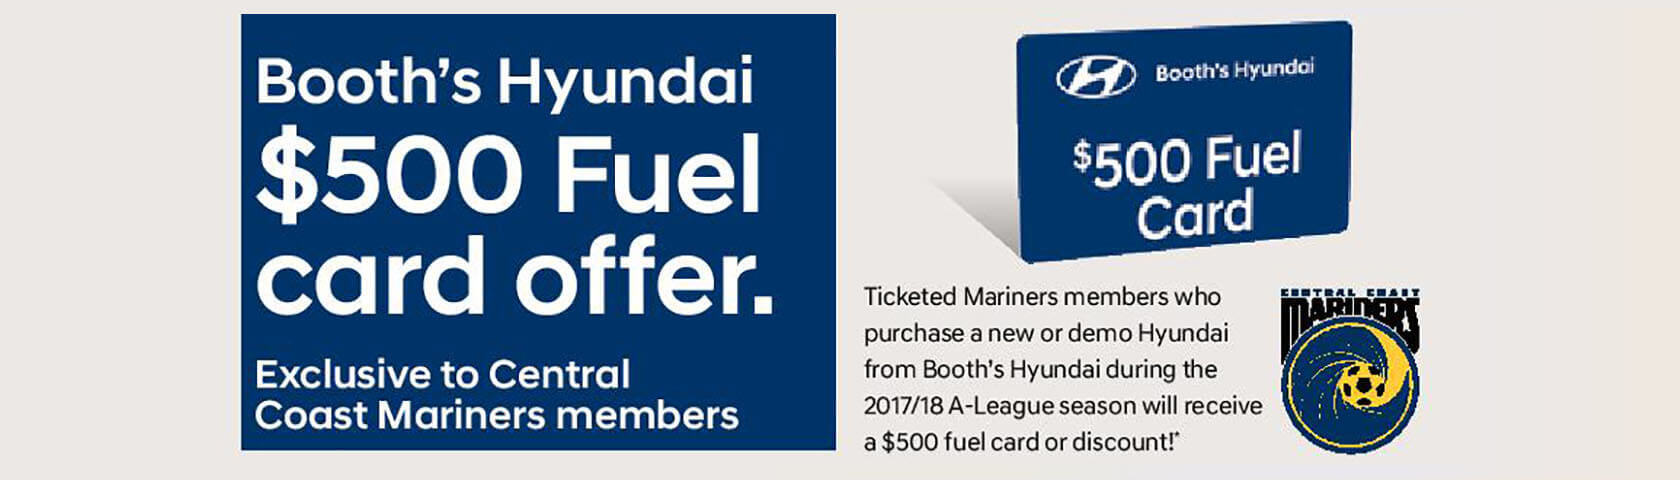 BoothsHyundai-500 Fuel Card Offer